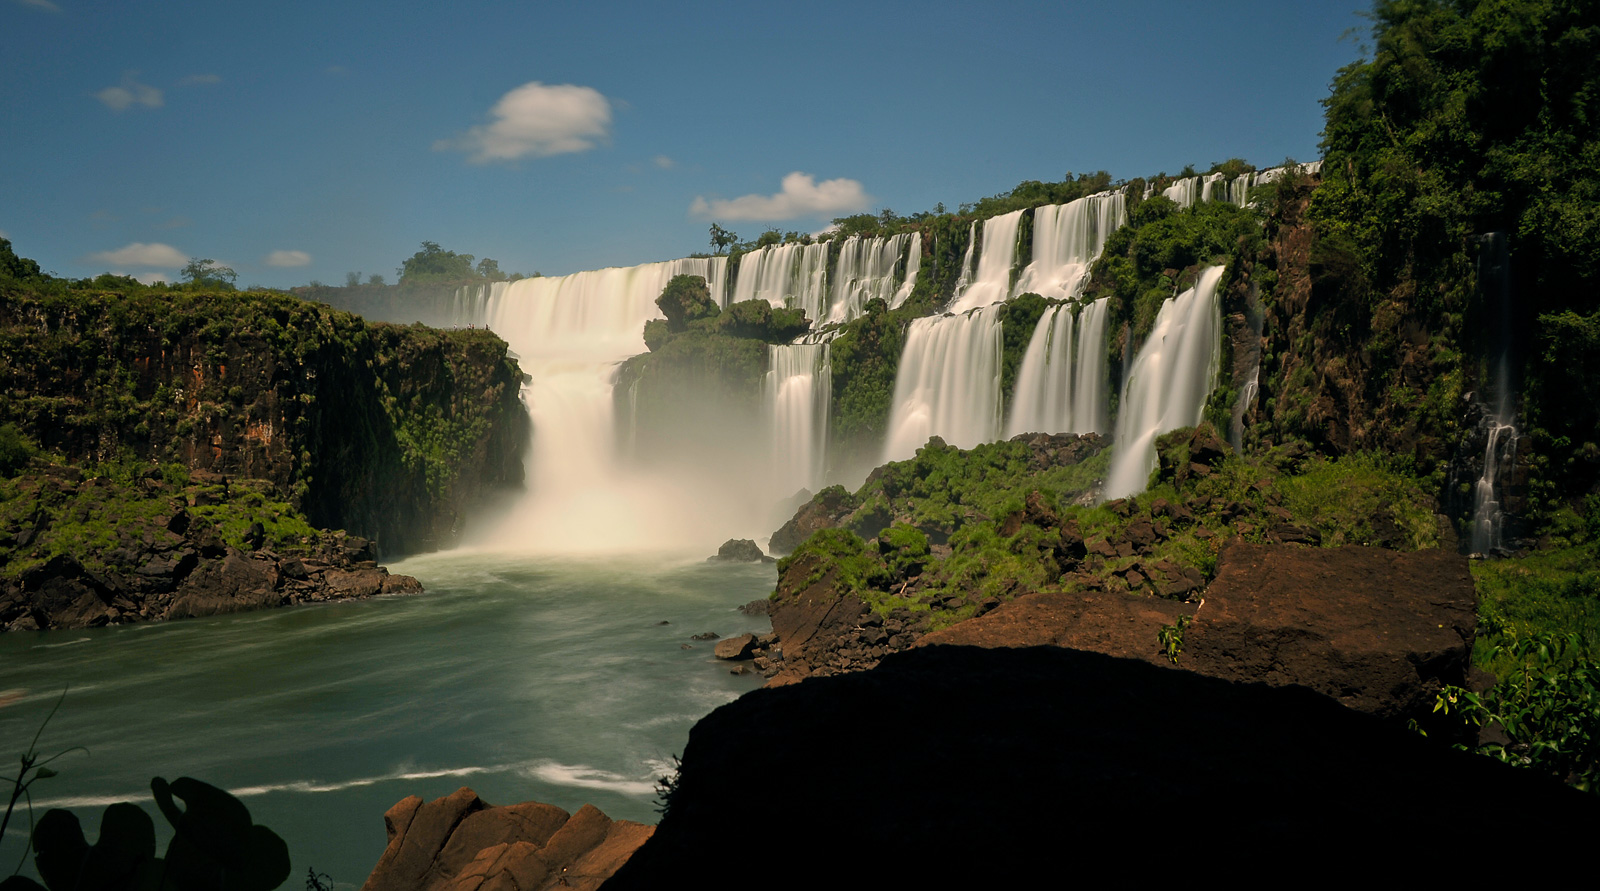 Cataratas del Iguazu [28 mm, 13.0 sec at f / 22, ISO 200]